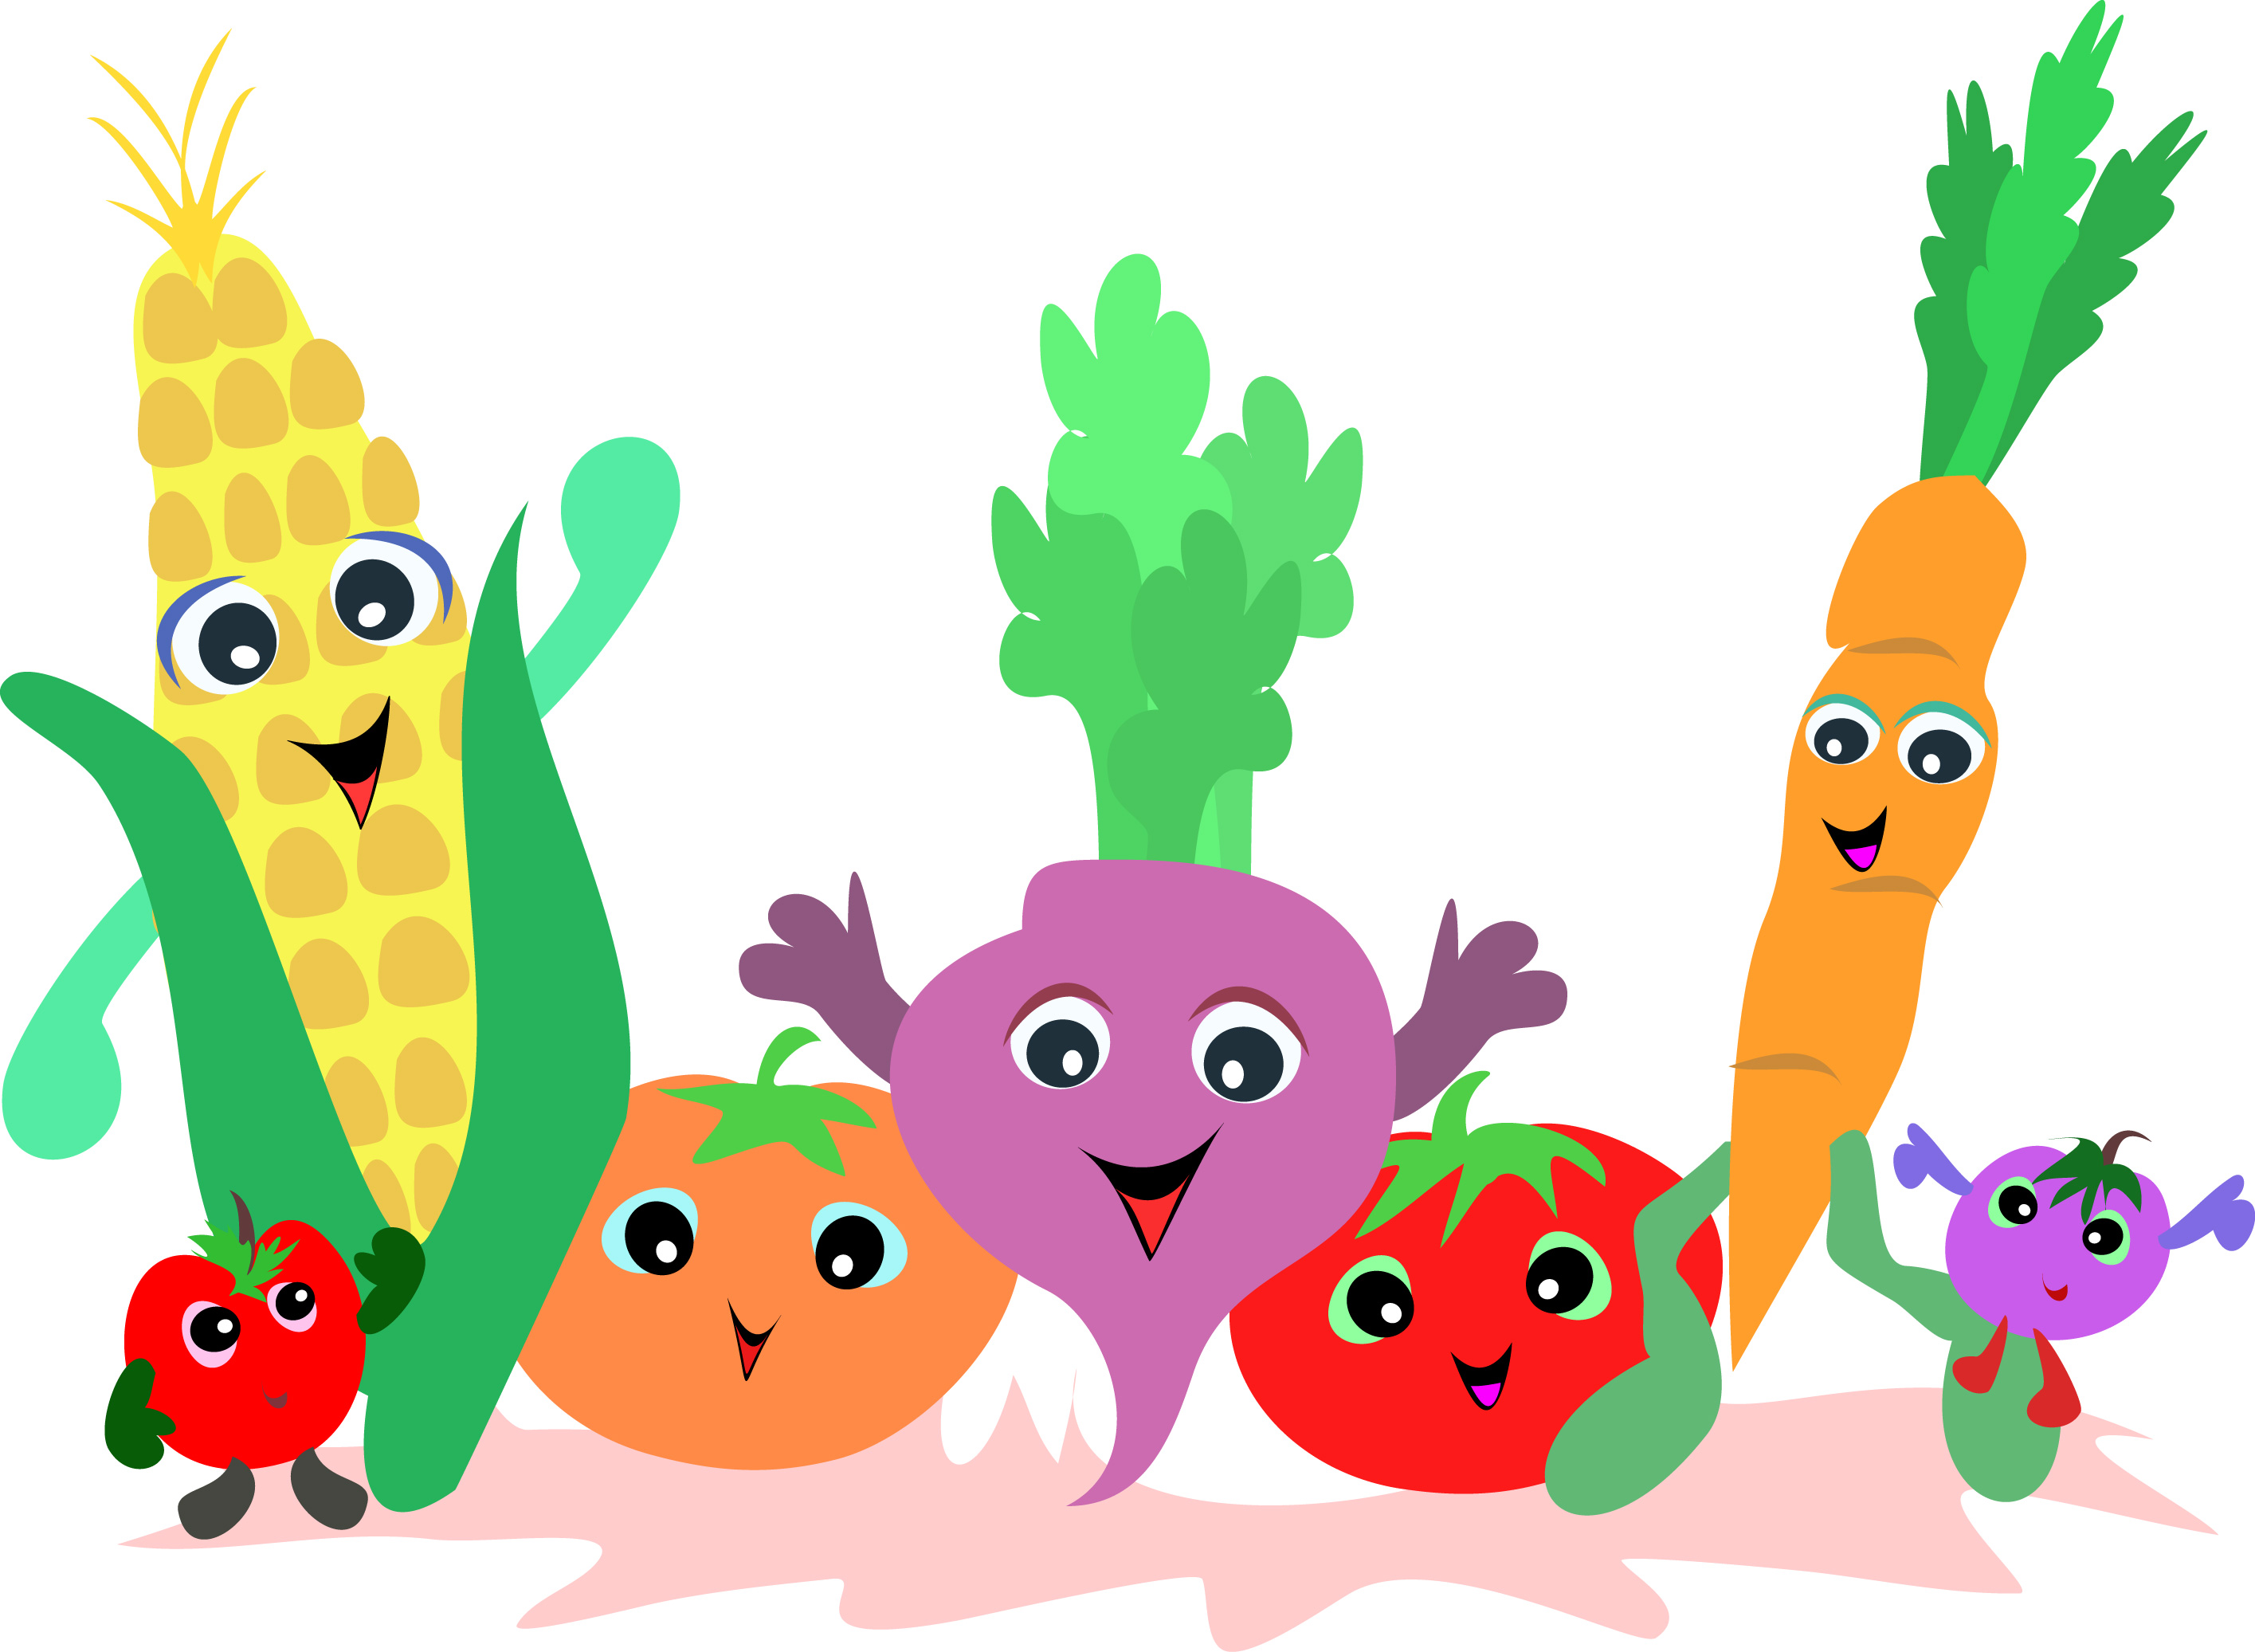 Free Animated Vegetables Cliparts, Download Free Clip Art.